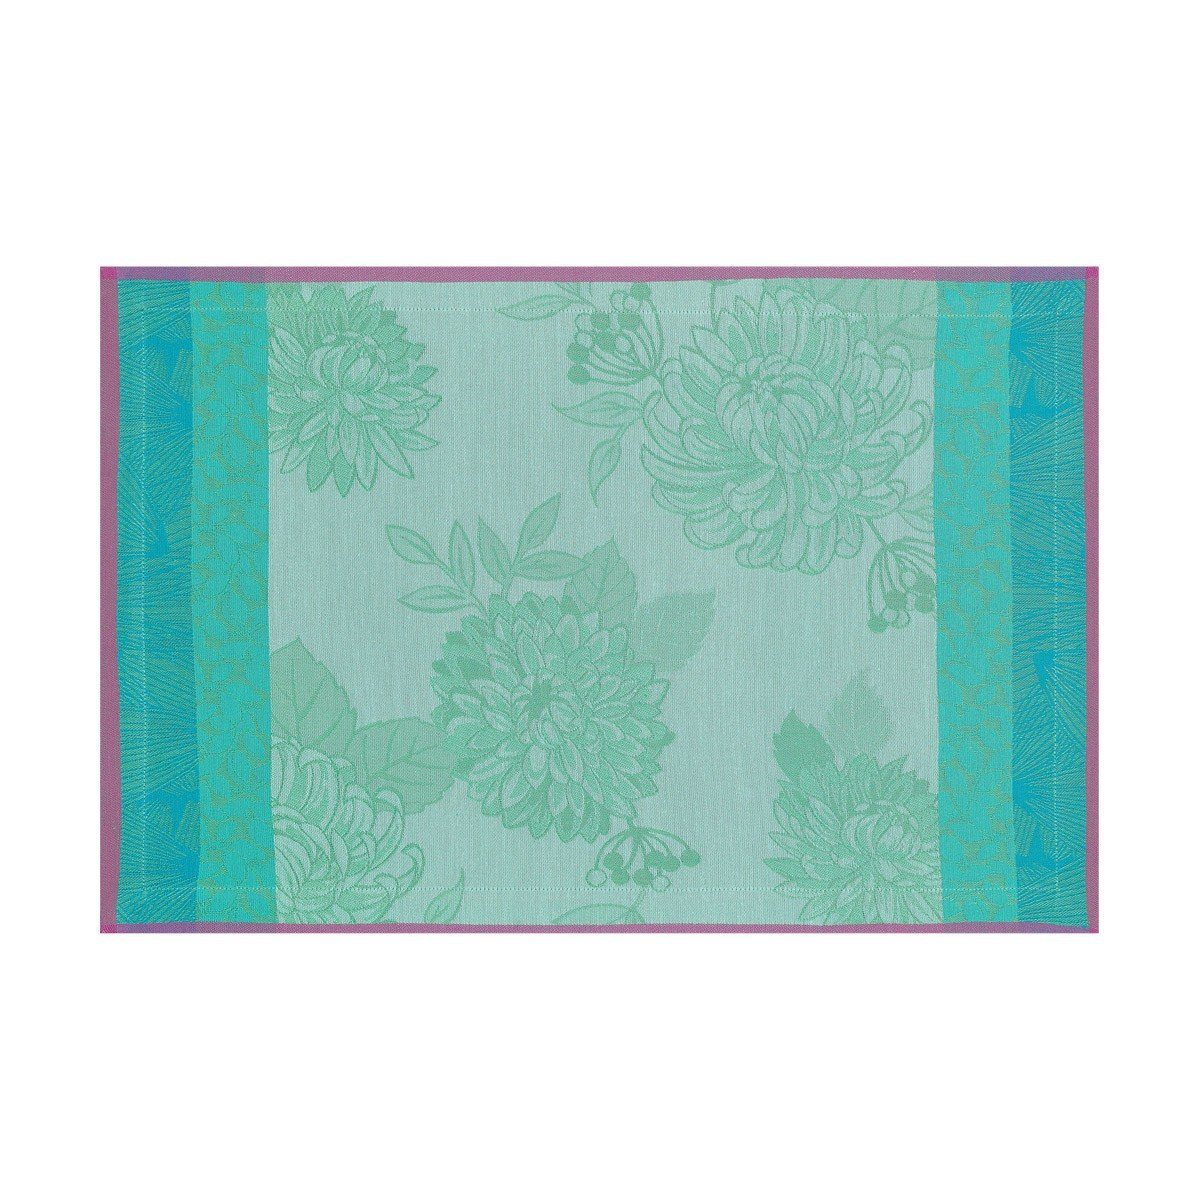 Le Jacquard Français Table Linen Parfums De Bagatelle Fig Linens Turquoise  placemat